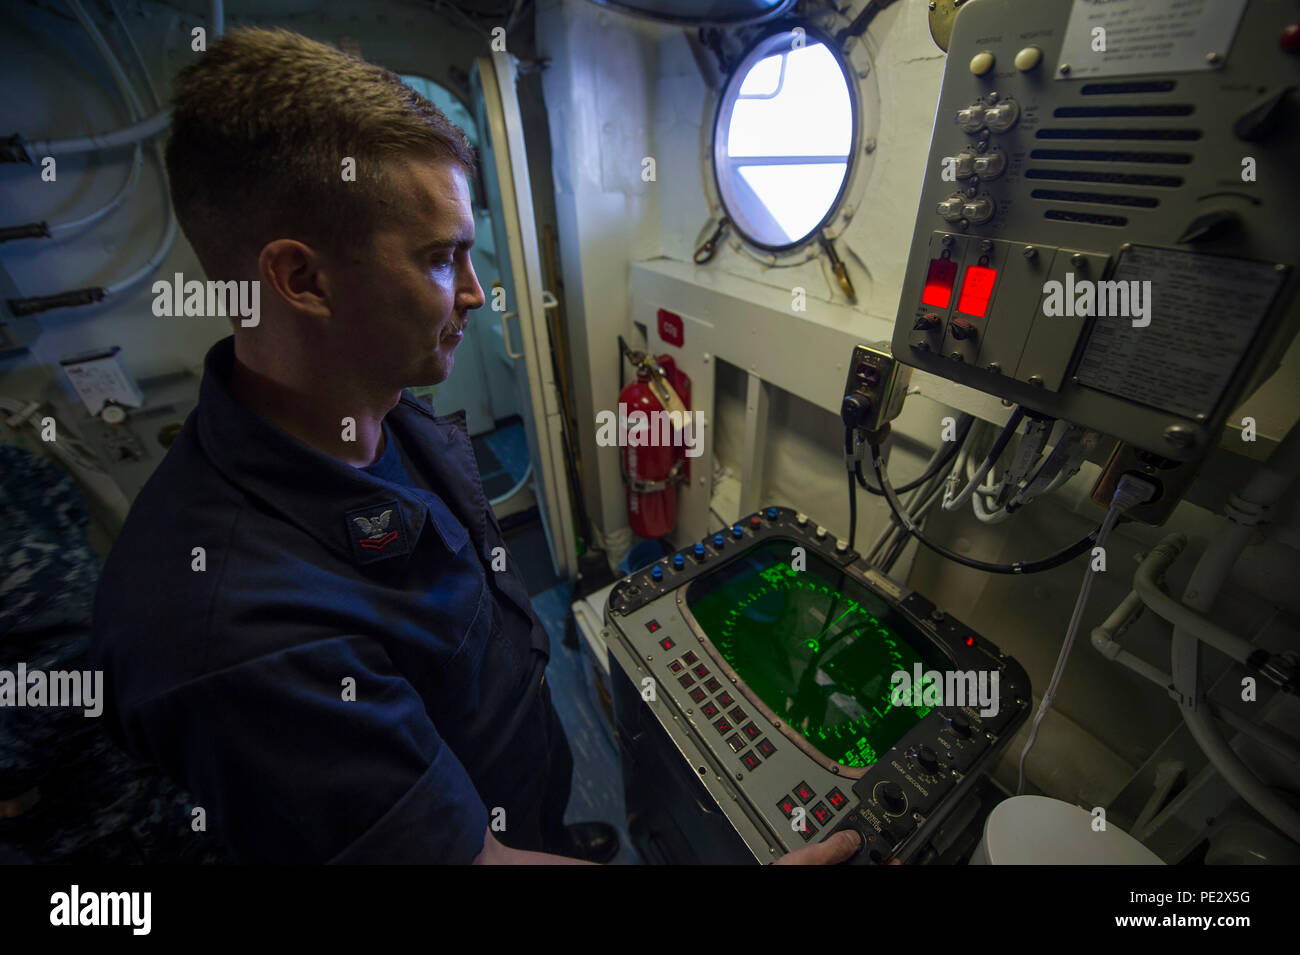 ARABIAN GULF (Sept. 23, 2015) Aerographer's Mate 2nd Class Aaron Radosevich monitors a SPA 25G radar for adherent weather conditions in the meteorological and oceanographic (METOC) office of Wasp-class amphibious assault ship USS Essex (LHD 2). Essex is the flagship of the Essex Amphibious Ready Group (ARG) and, with the embarked 15th Marine Expeditionary Unit (MEU), is deployed in support of maritime security operations and theater security cooperation efforts in the U.S. 5th Fleet area of operations. (U.S. Navy photo by Mass Communication Specialist 3rd Class Christopher A. Veloicaza/Release - Stock Image